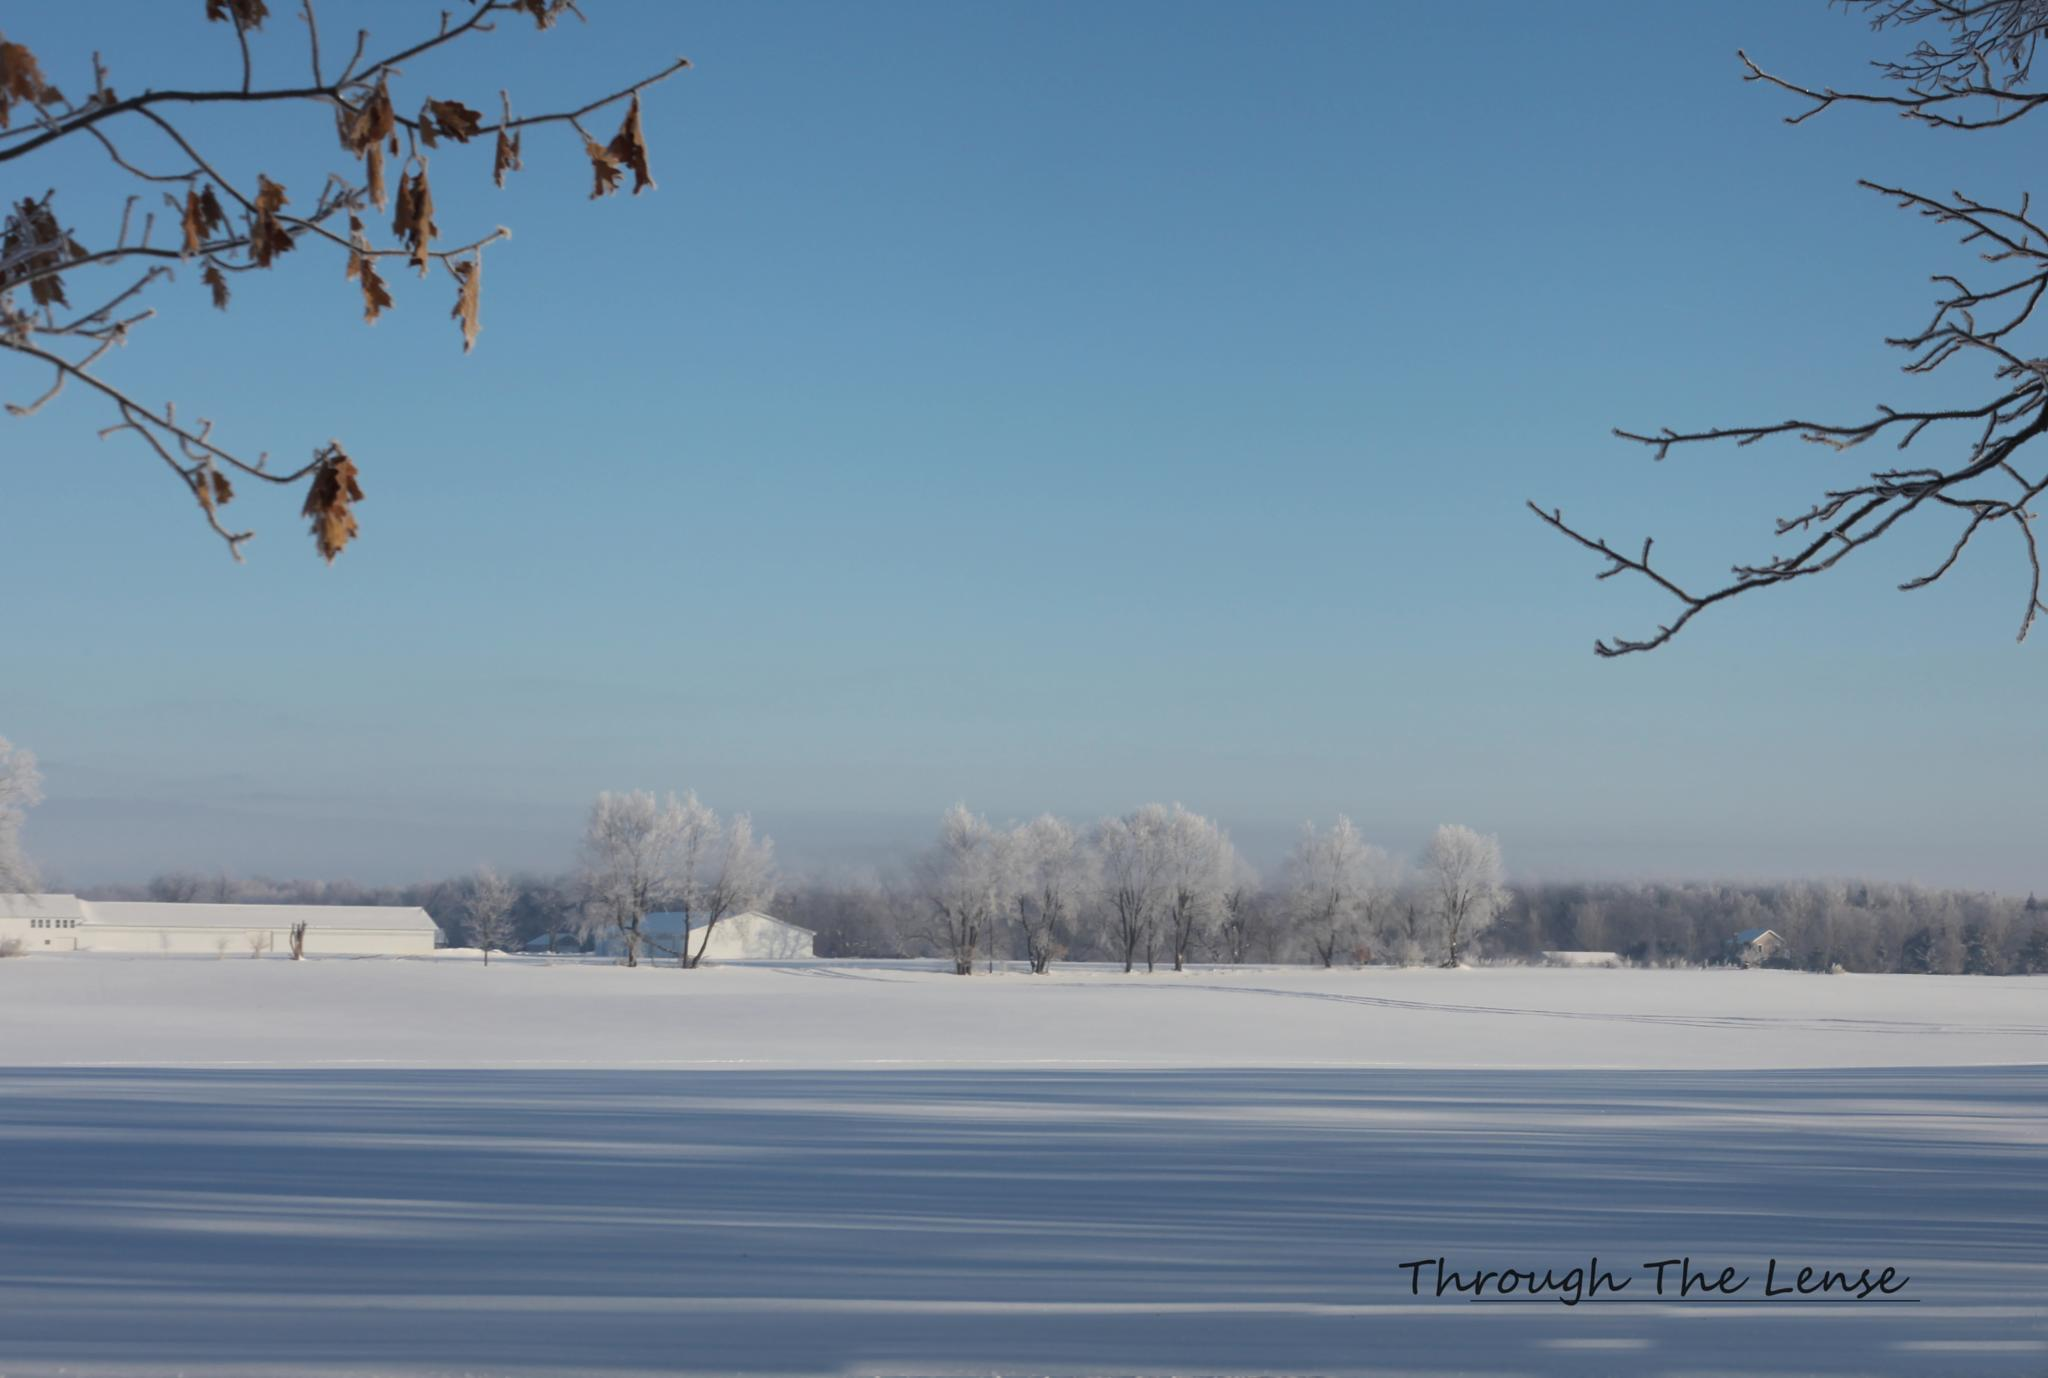 Winter Landscape by Throughthelense